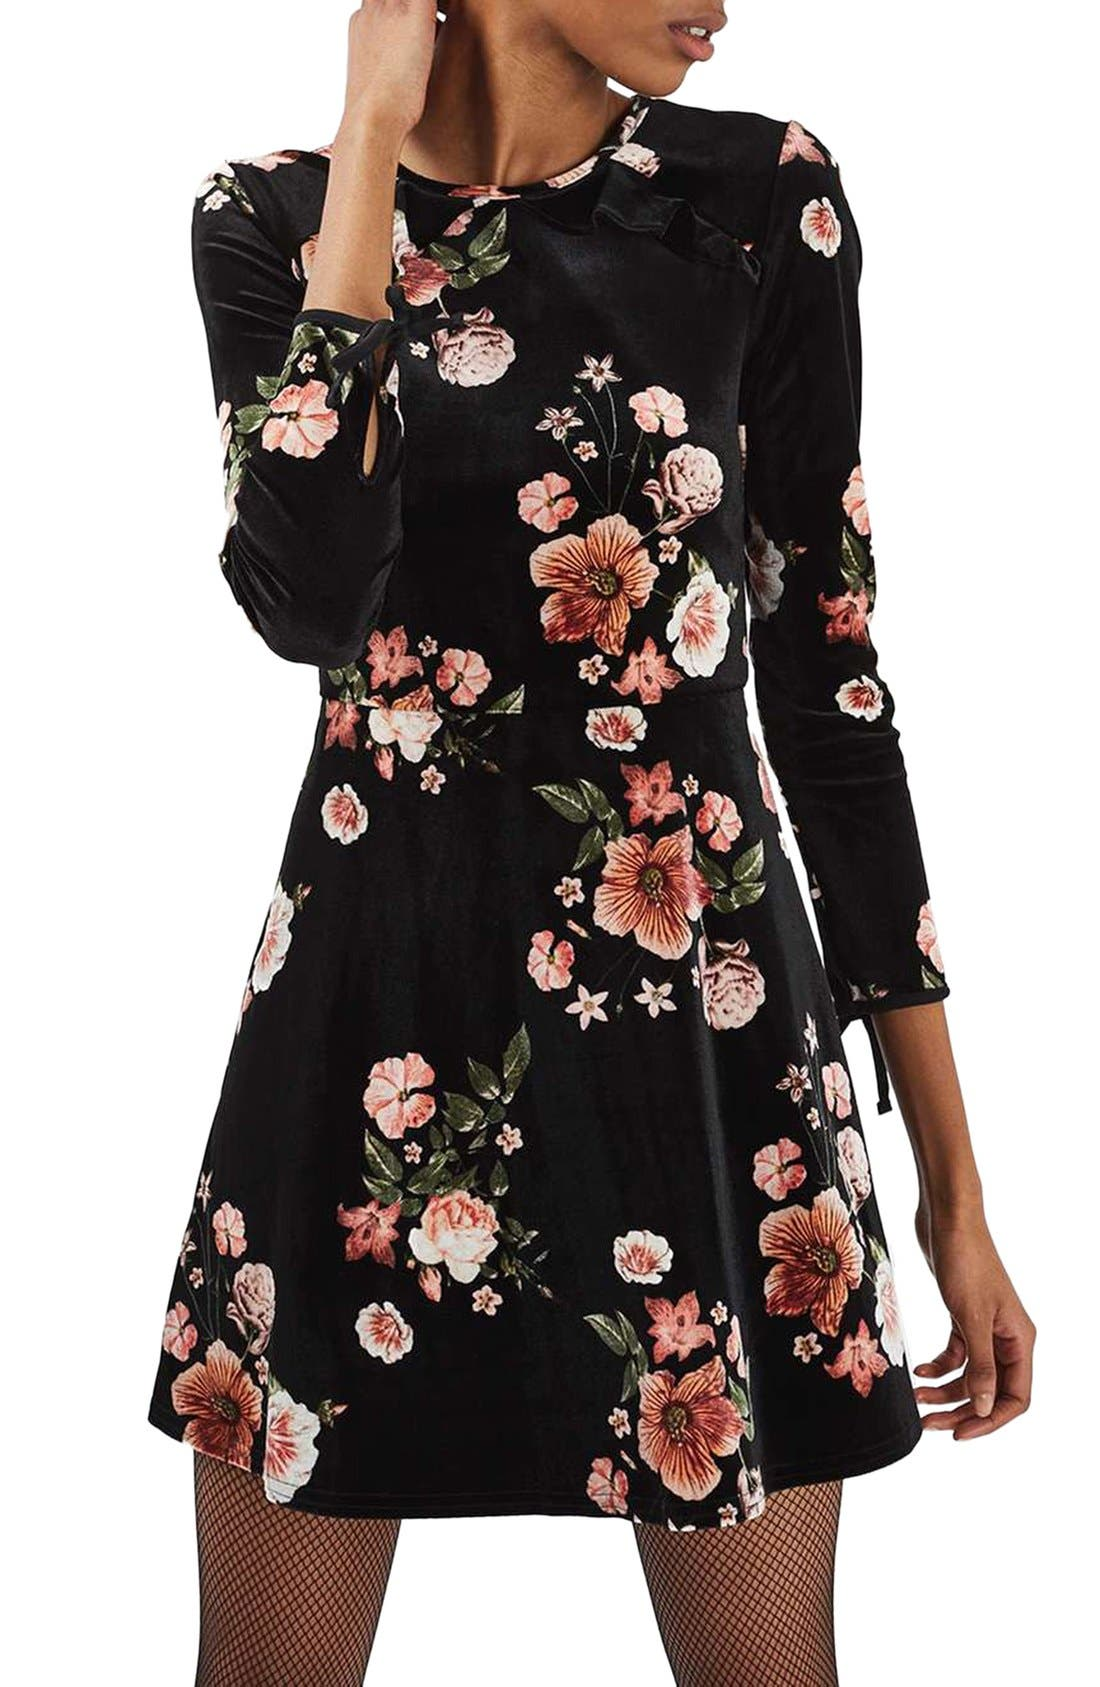 Alternate Image 1 Selected - Topshop Floral Velvet Dress